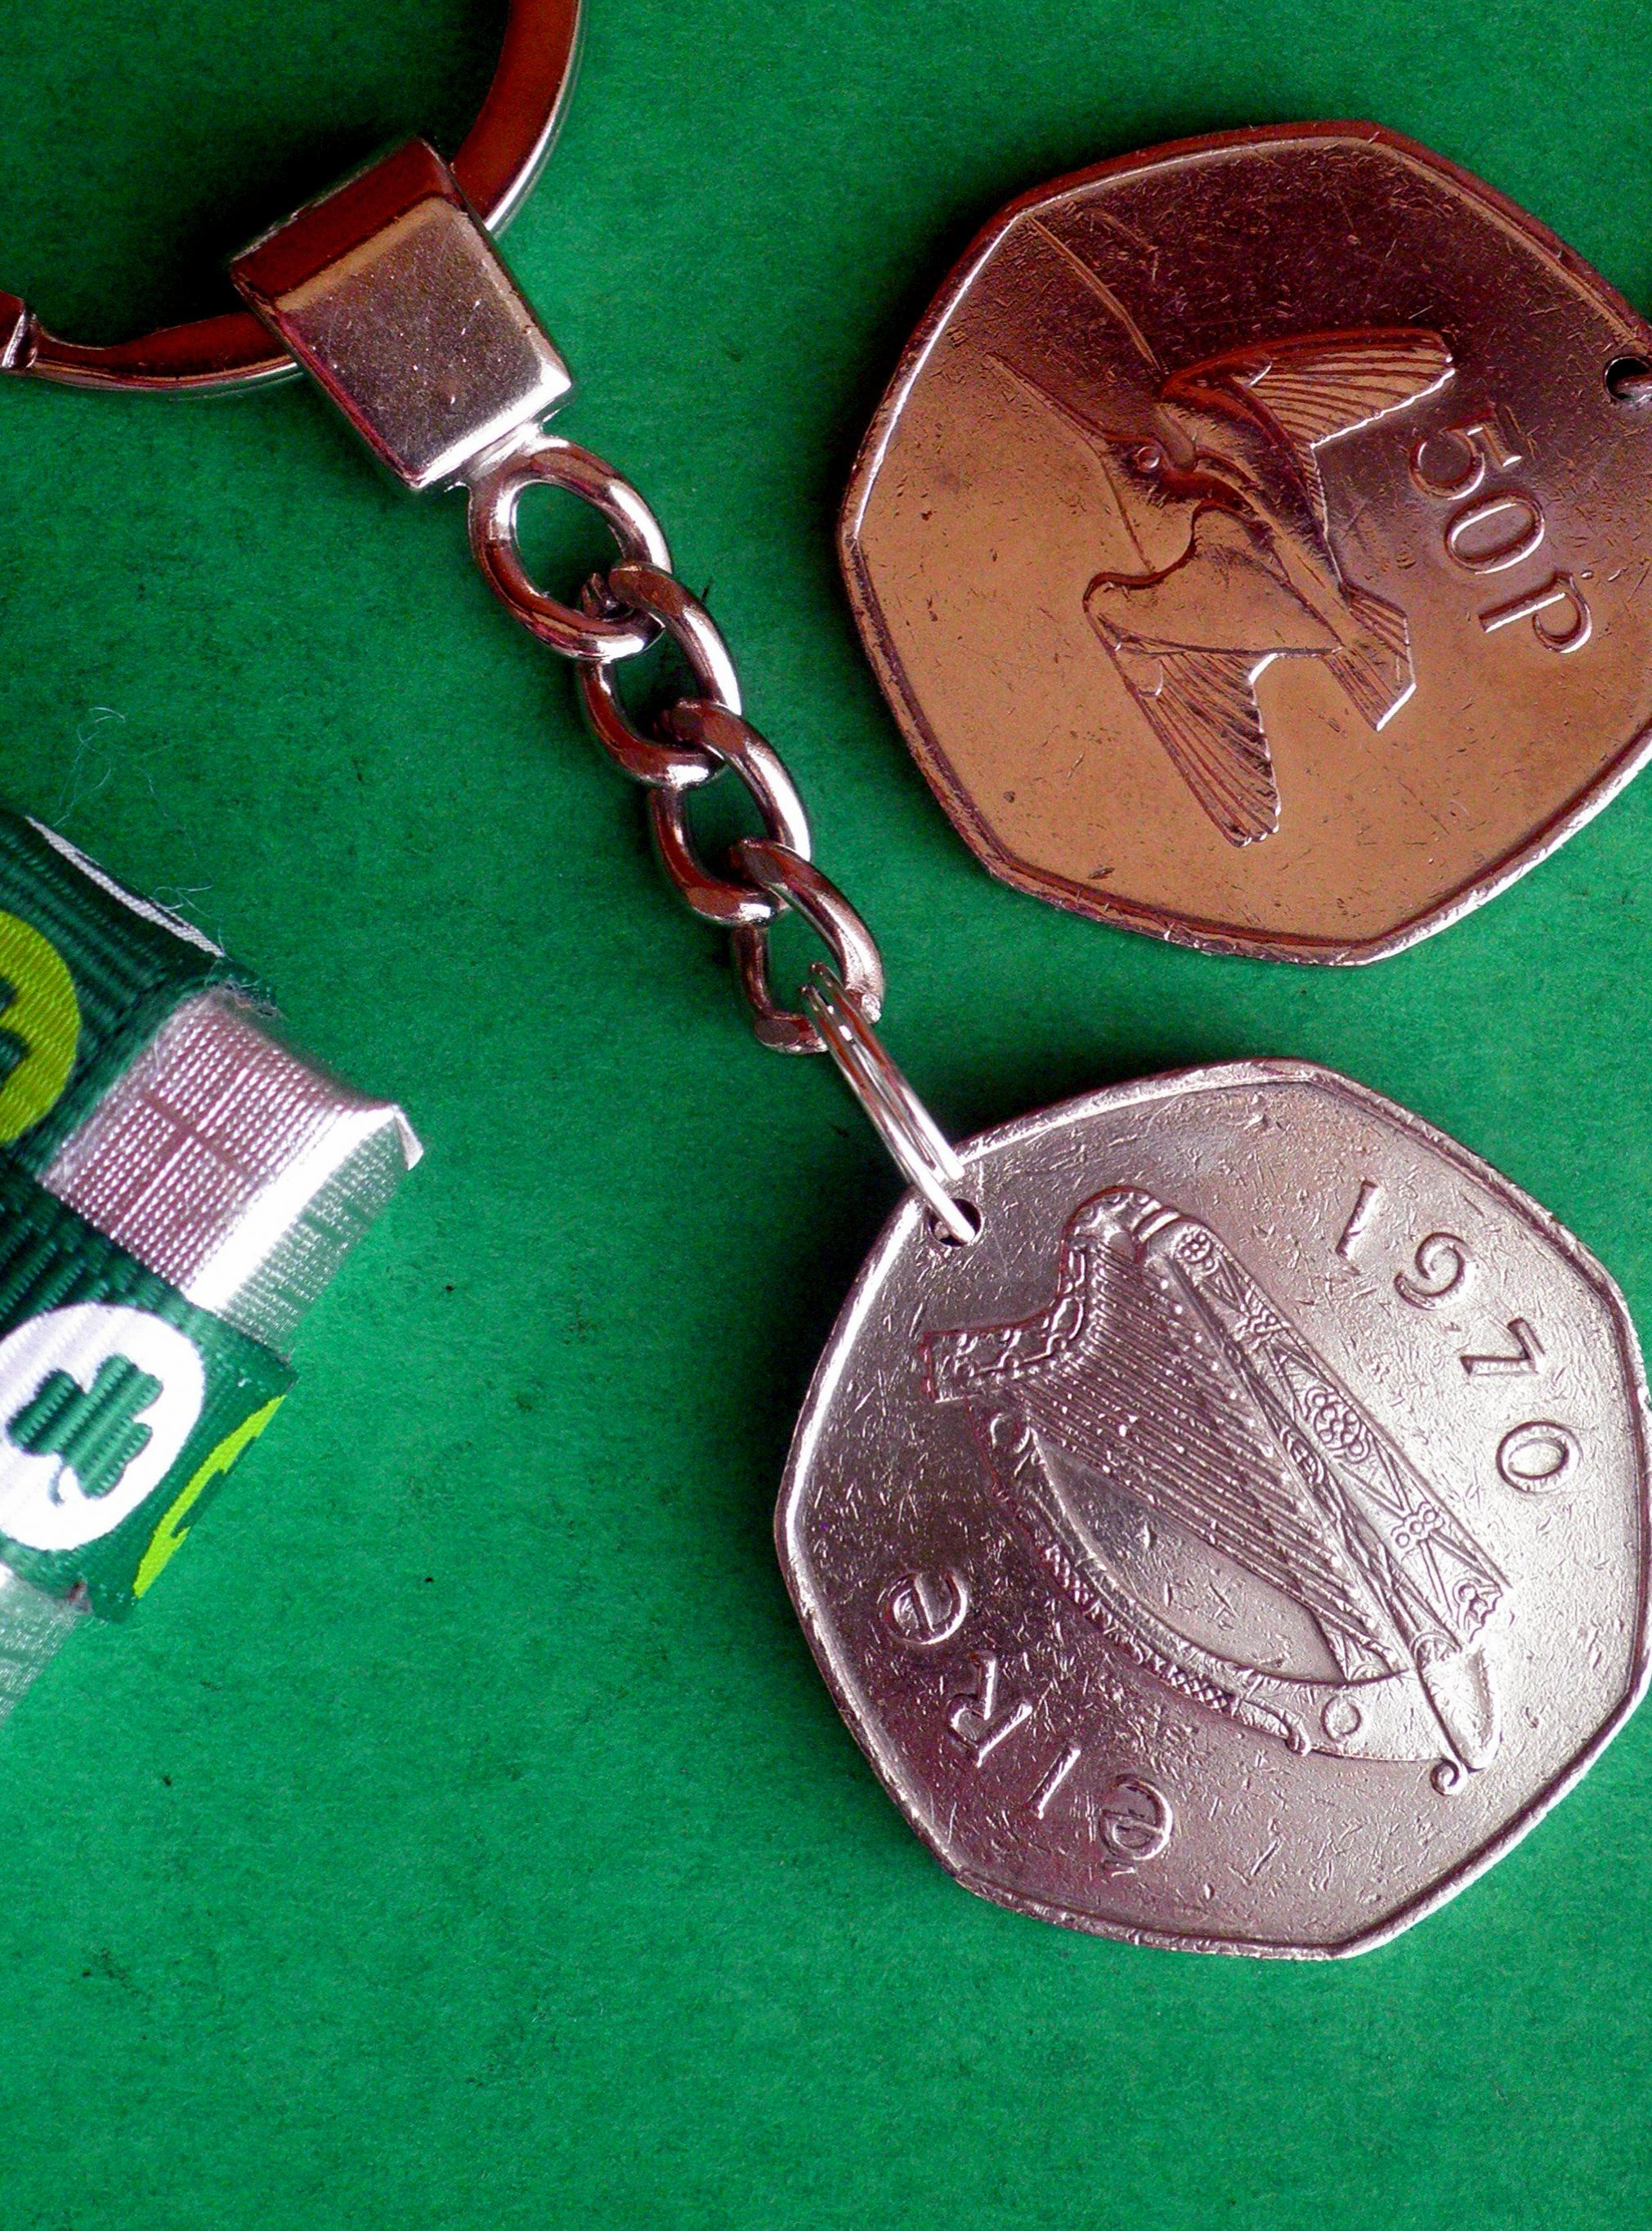 21st birthday gifts for her ireland